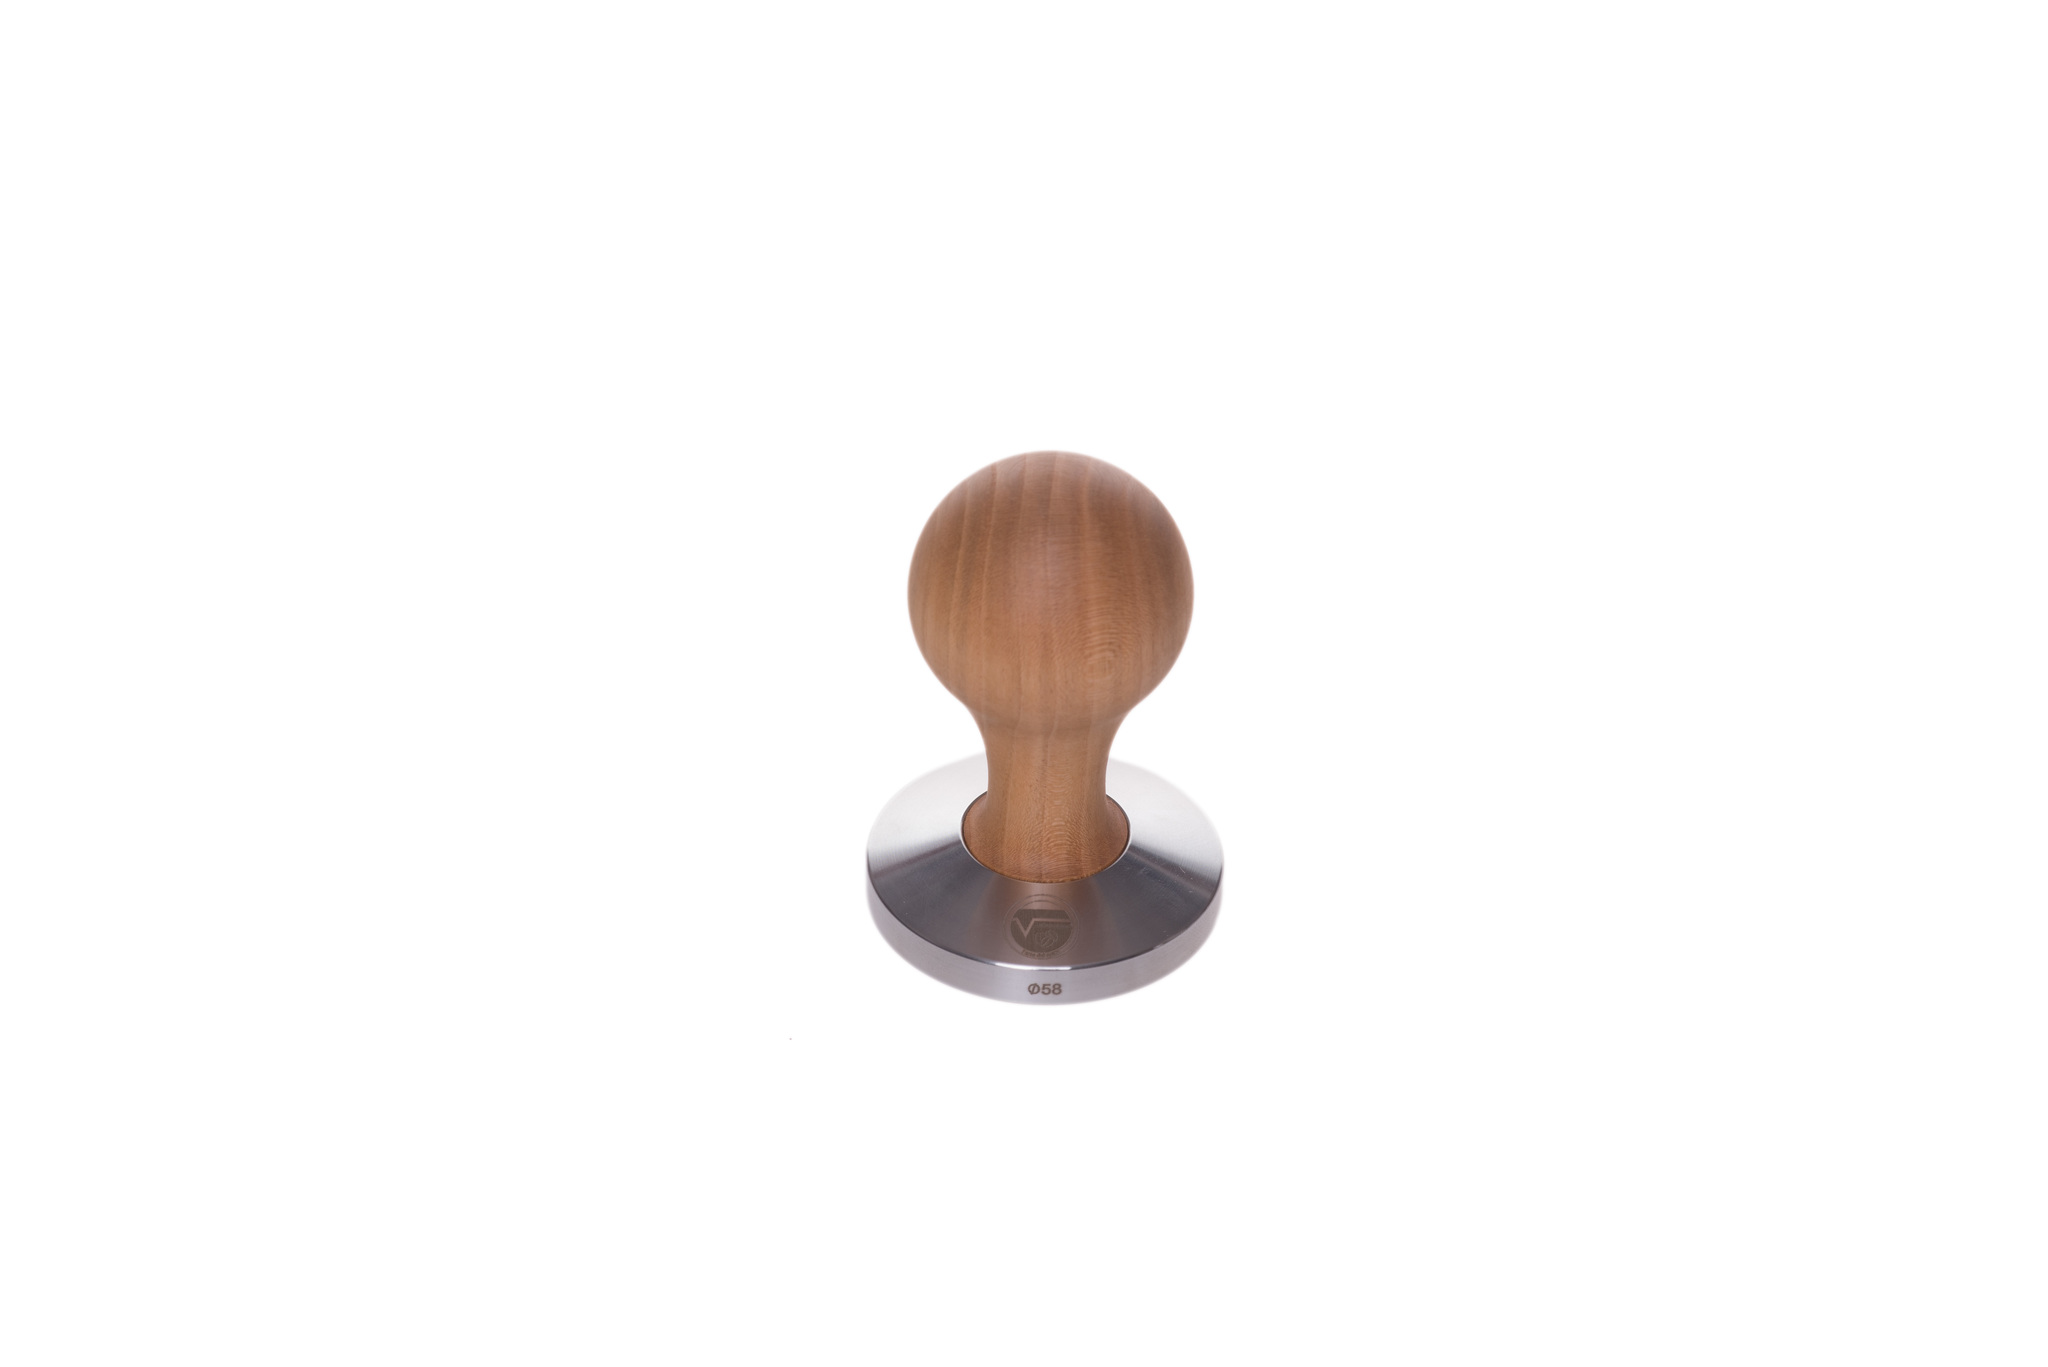 Vitudurum Tamper 58mm Kirschholz Swiss Made